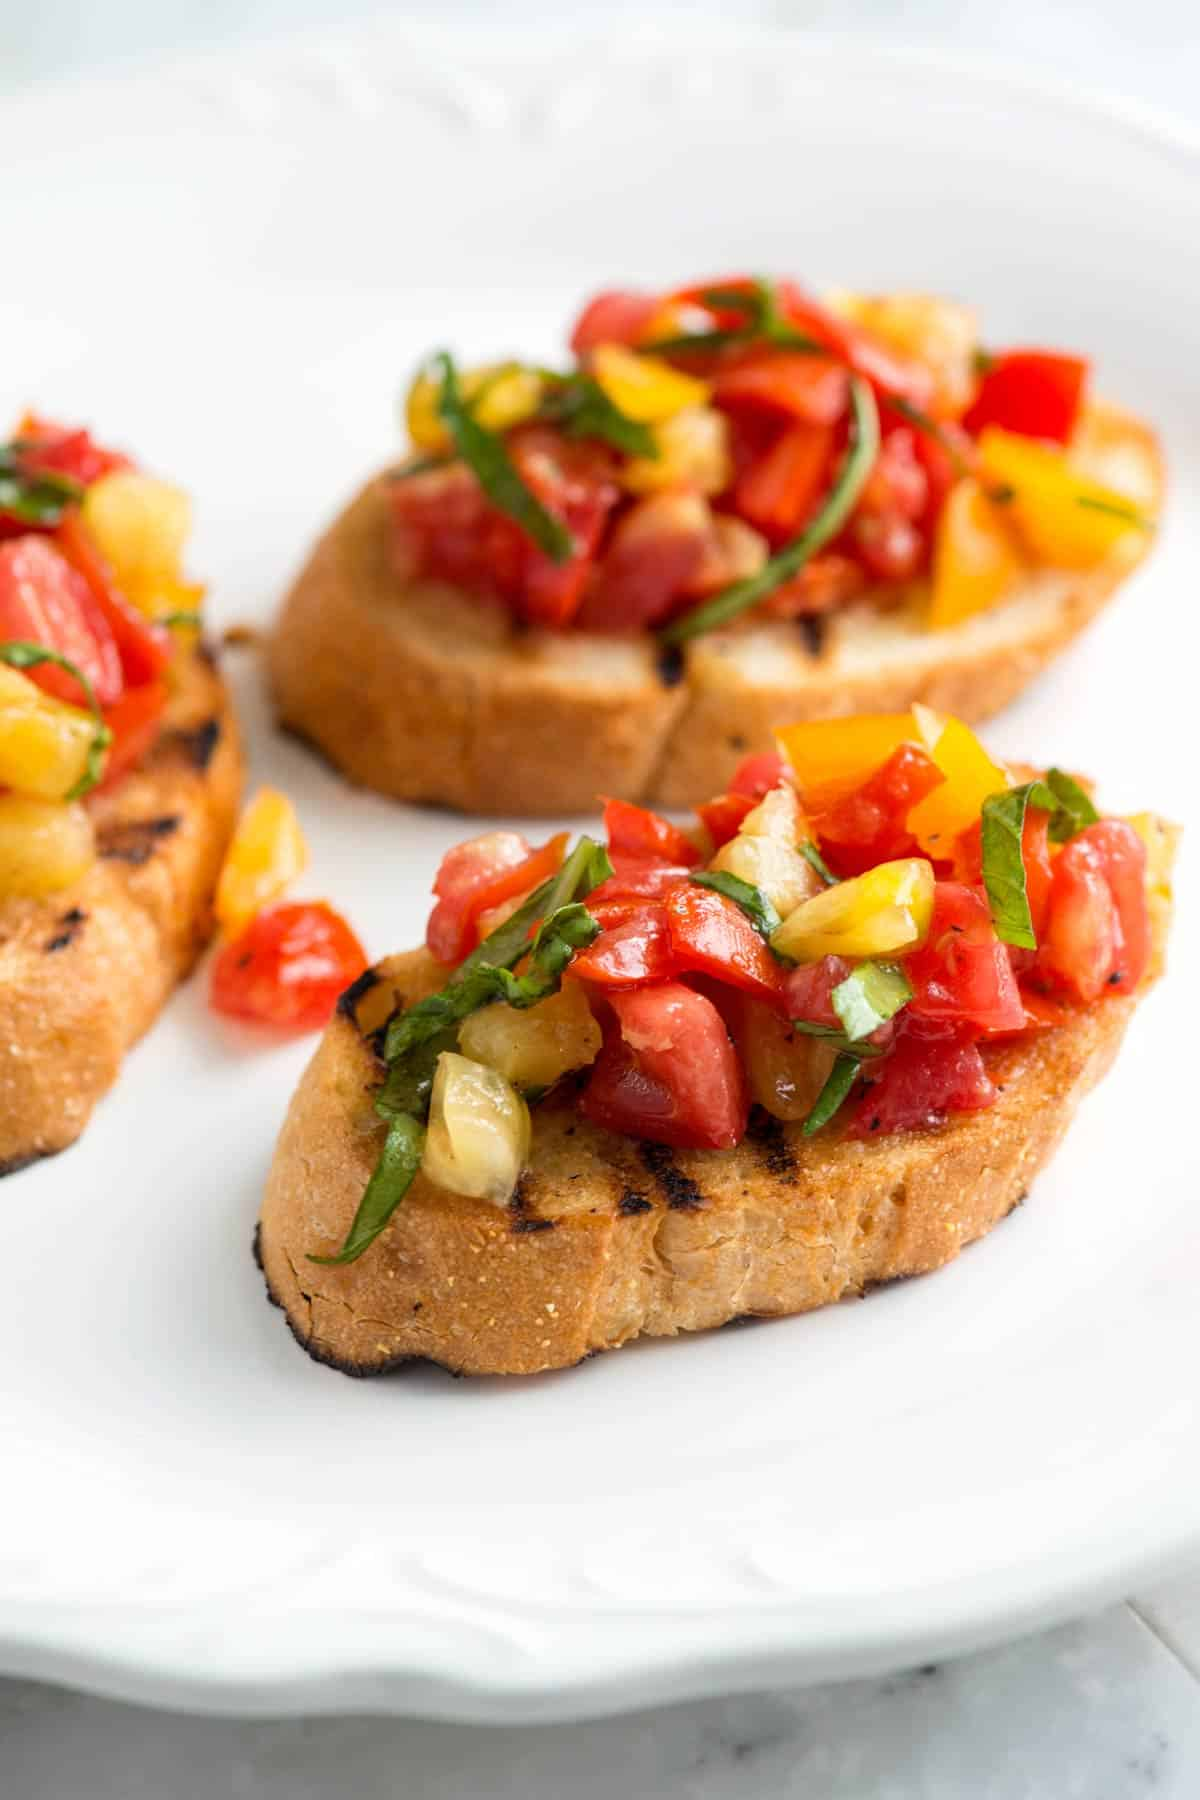 Image result for image bruschetta with tomatoes